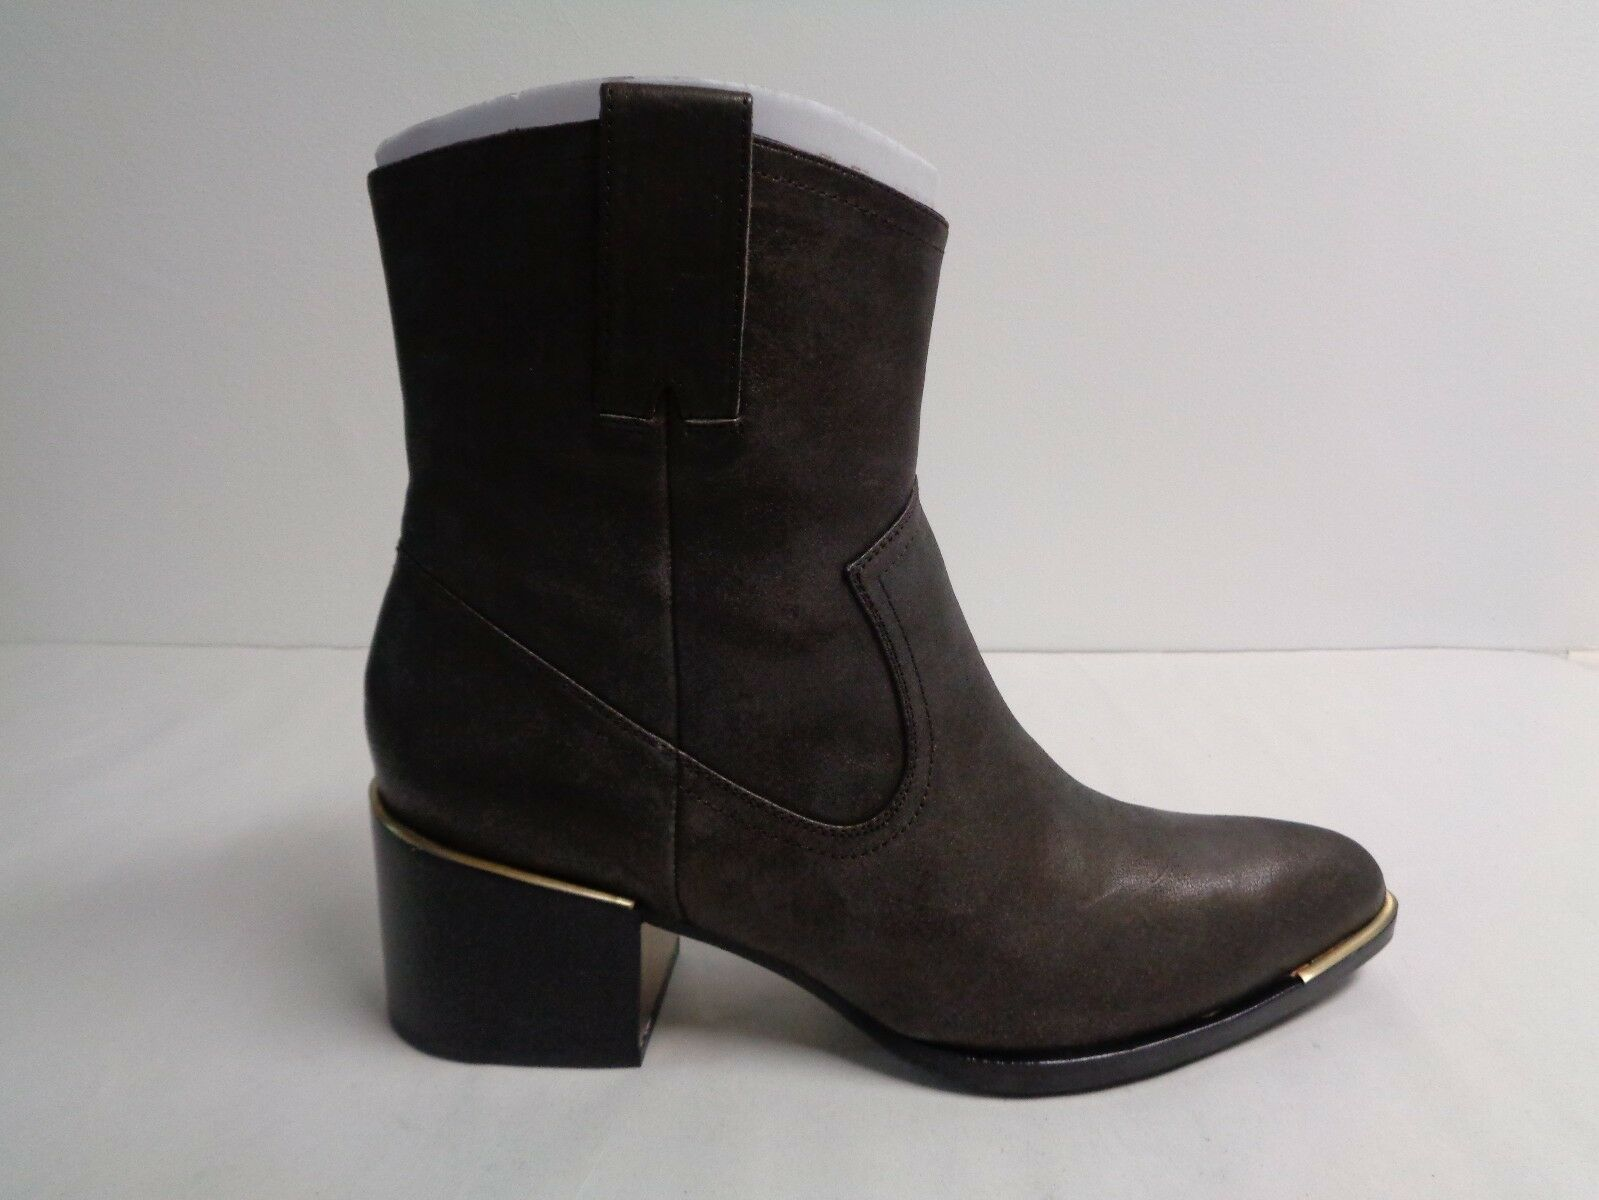 Rachel Zoe Size 8.5 M LORI PEARLIZED PEARLIZED PEARLIZED Bronze Leather Ankle Boots New Womens shoes 08bc1f